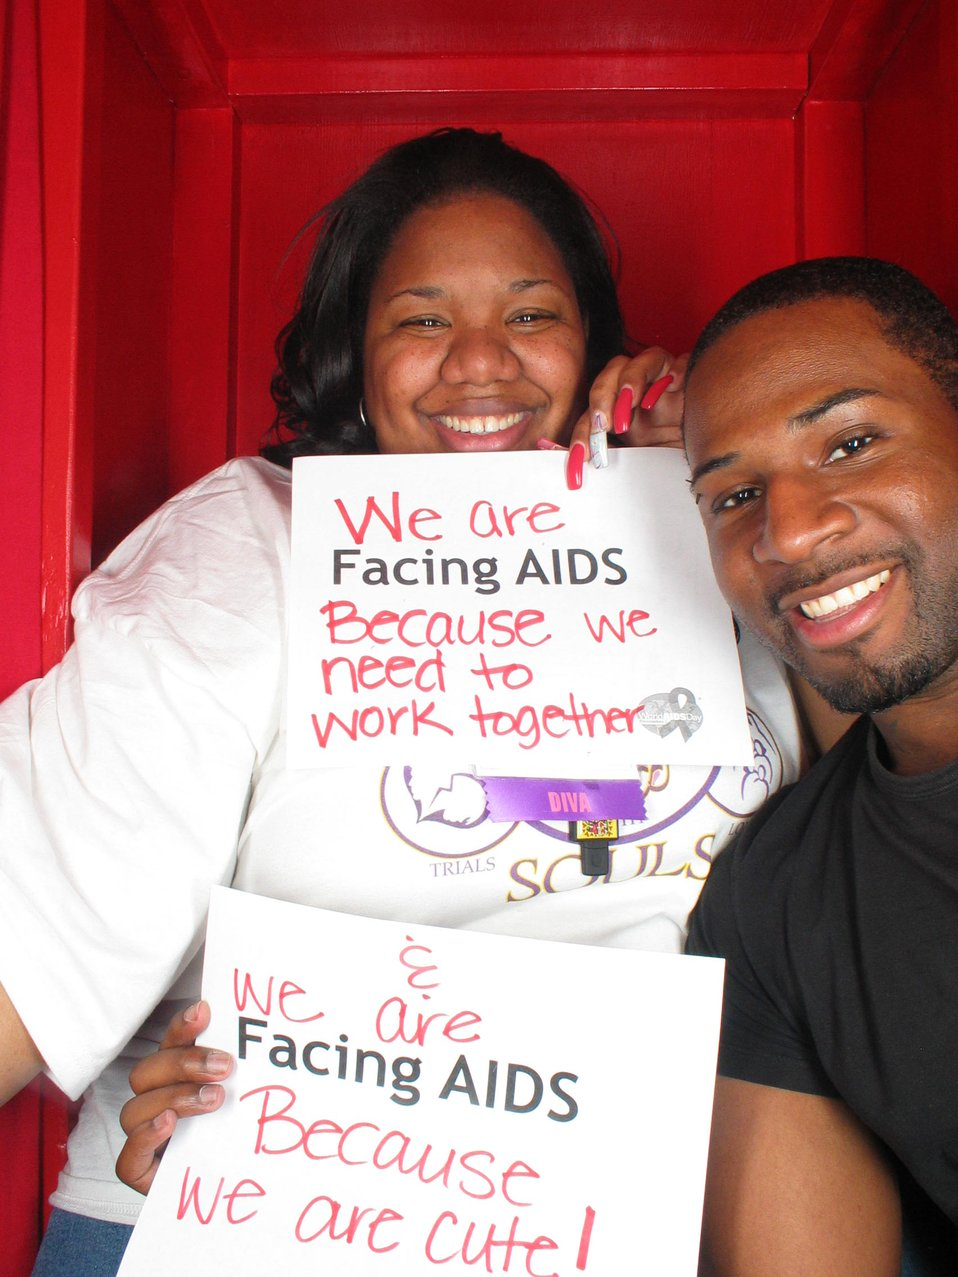 We are Facing AIDS because we need to work togehter and we are Facing AIDS because we are cute!